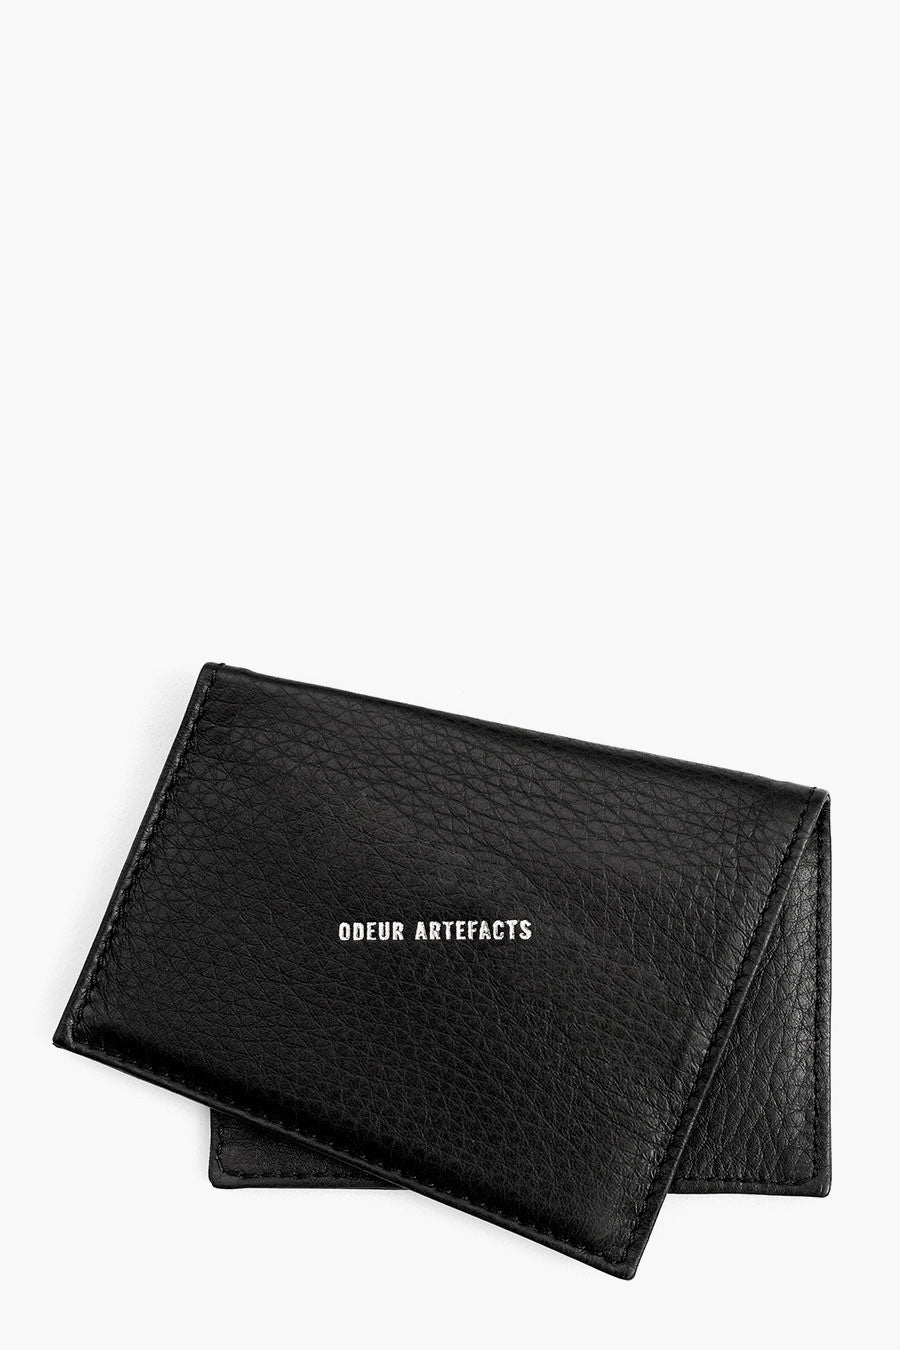 Odeur Artefacts Skew Card Holder: Black Leather